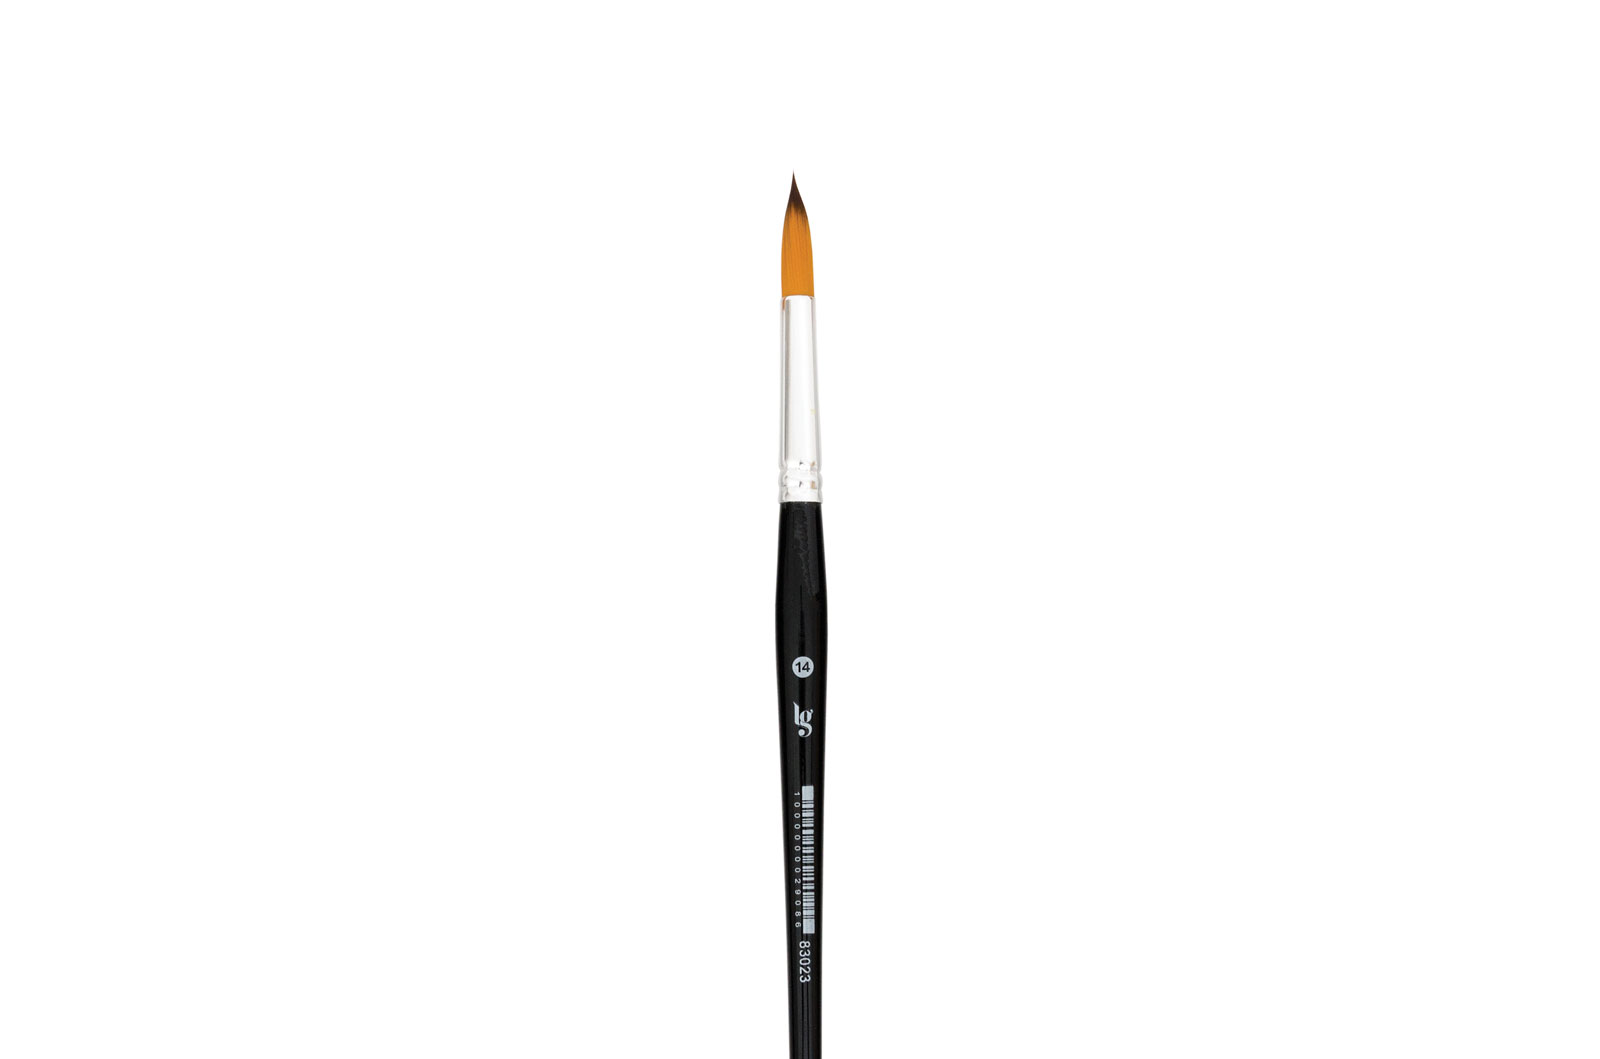 BRUSH LG Nº14 SYNTHETIC ROUND /12